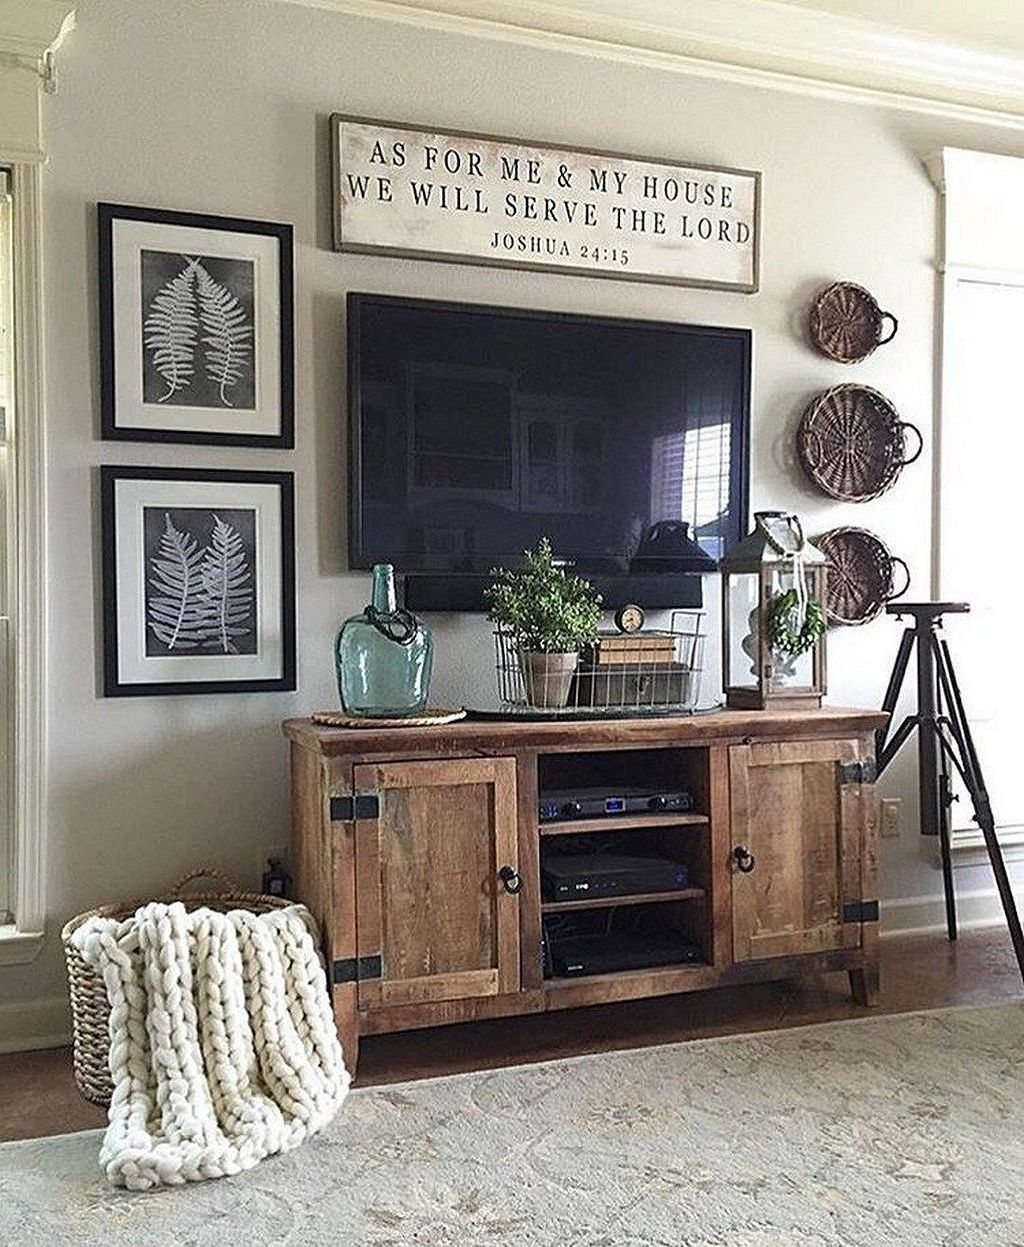 31 Awesome Diy Rustic Home Decor Ideas For Living Room Farm House Living Room Living Wall Decor Farmhouse Decor Living Room